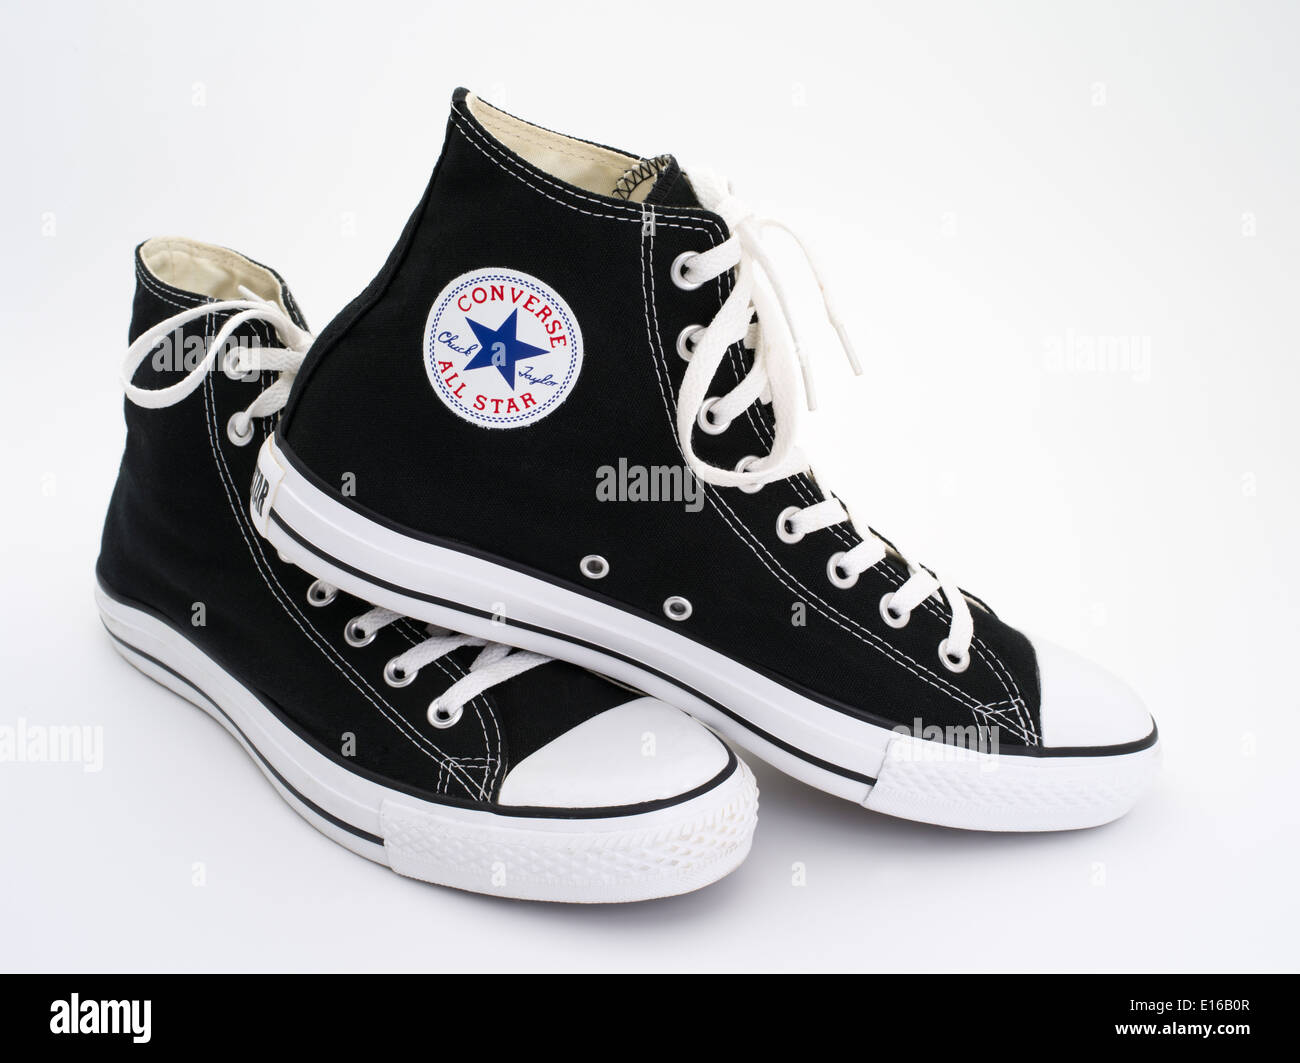 All Star Converse All Star Black And White Chuck Taylor Chuck